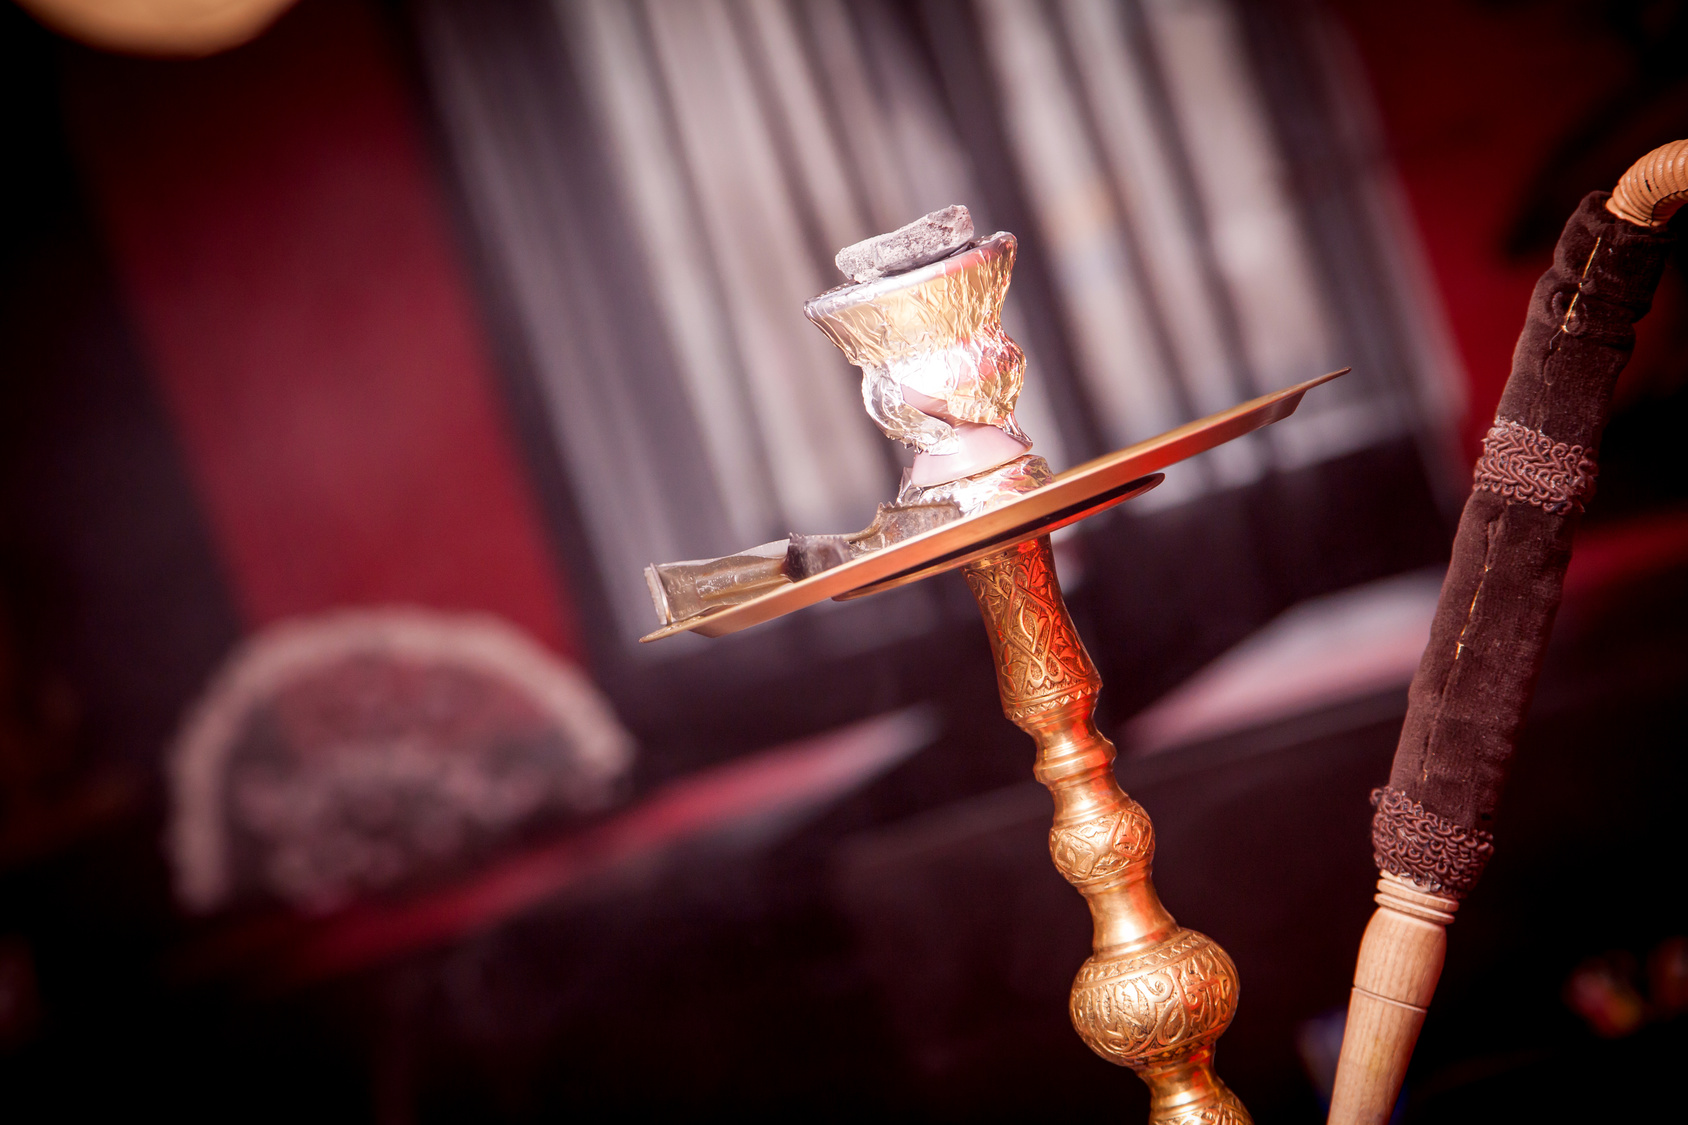 Hookah – The Silent Killer